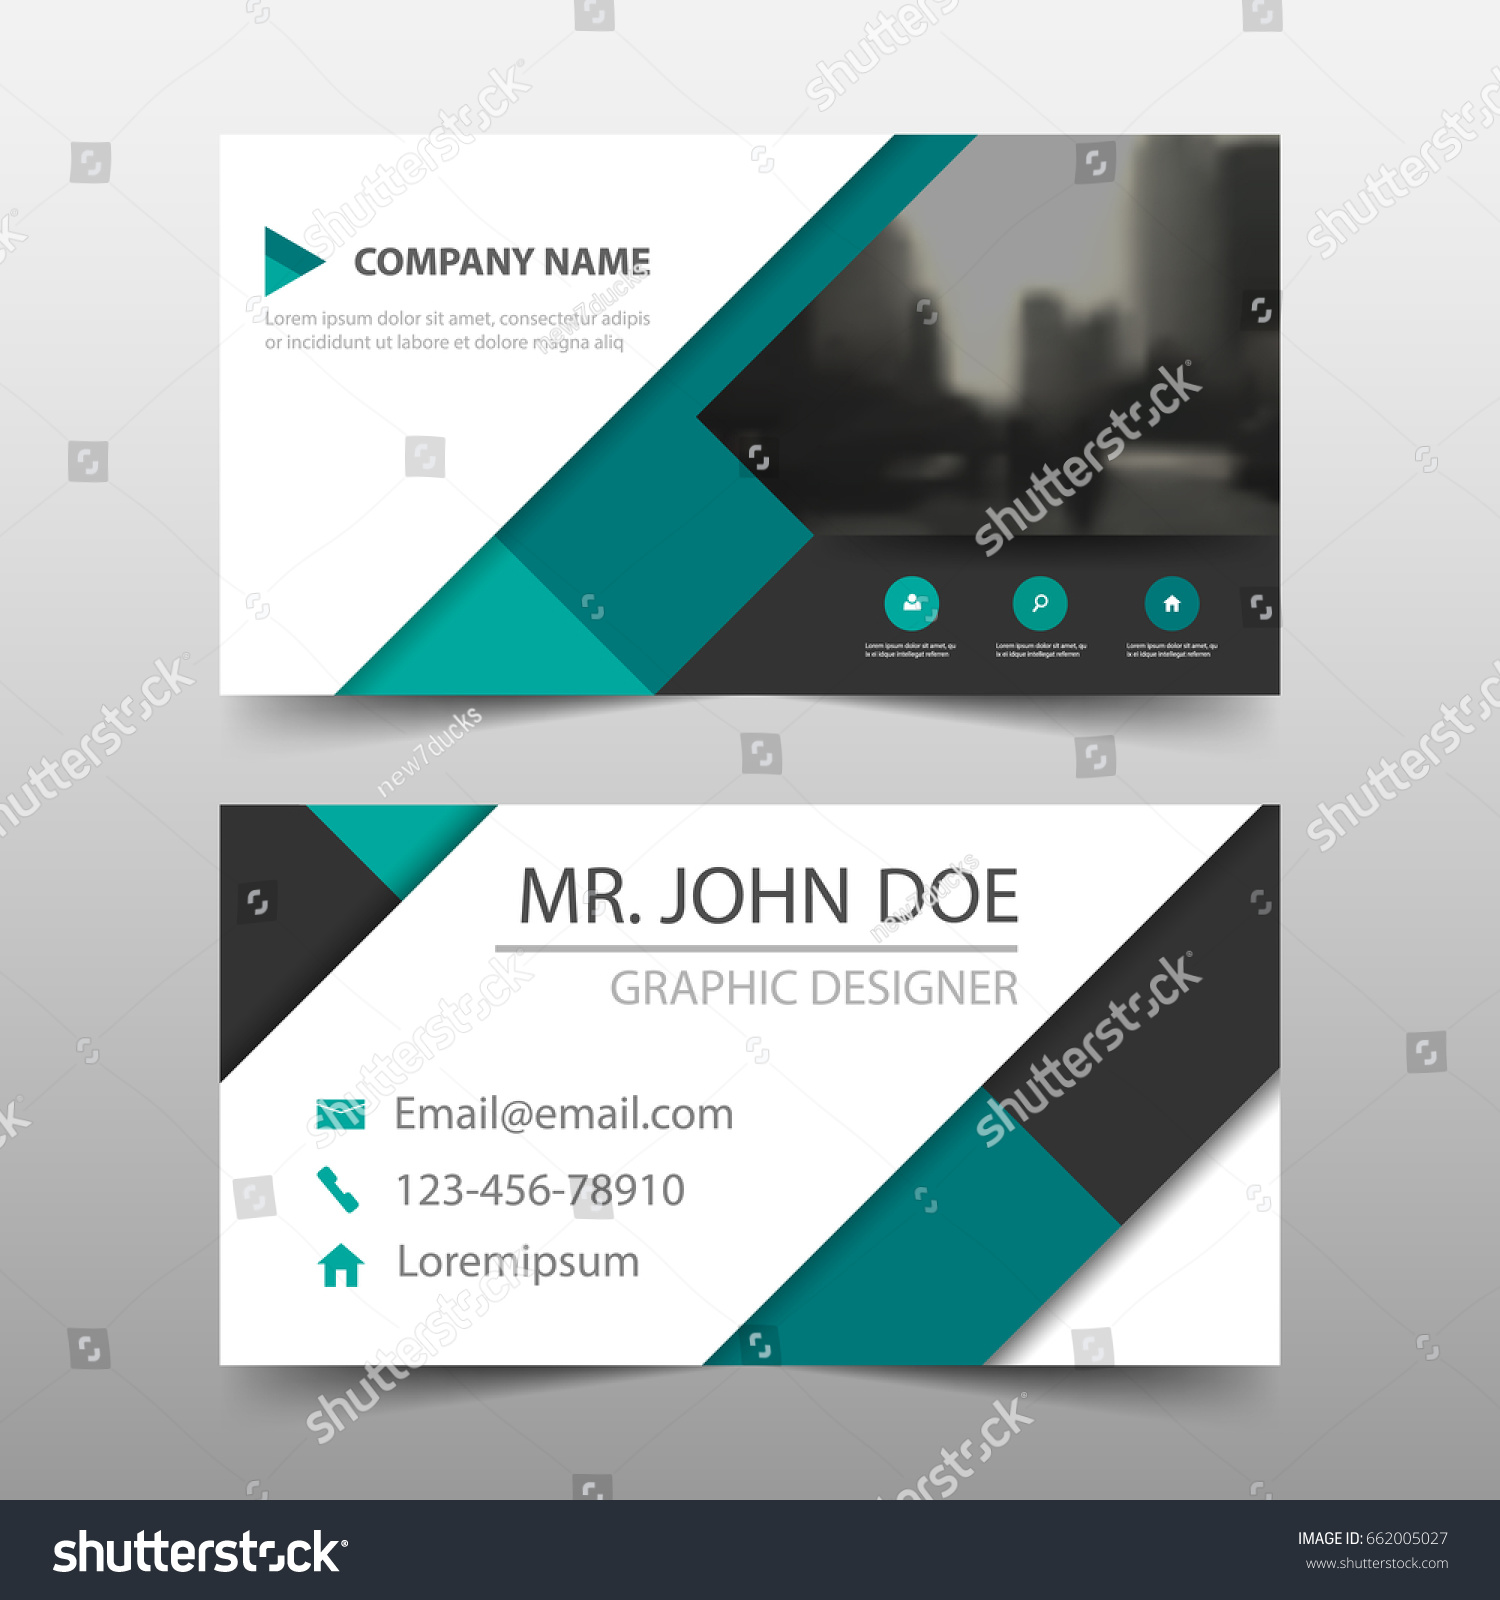 Business card website template gallery free business cards green square corporate business card name stock vector 662005027 green square corporate business card name card magicingreecefo Gallery